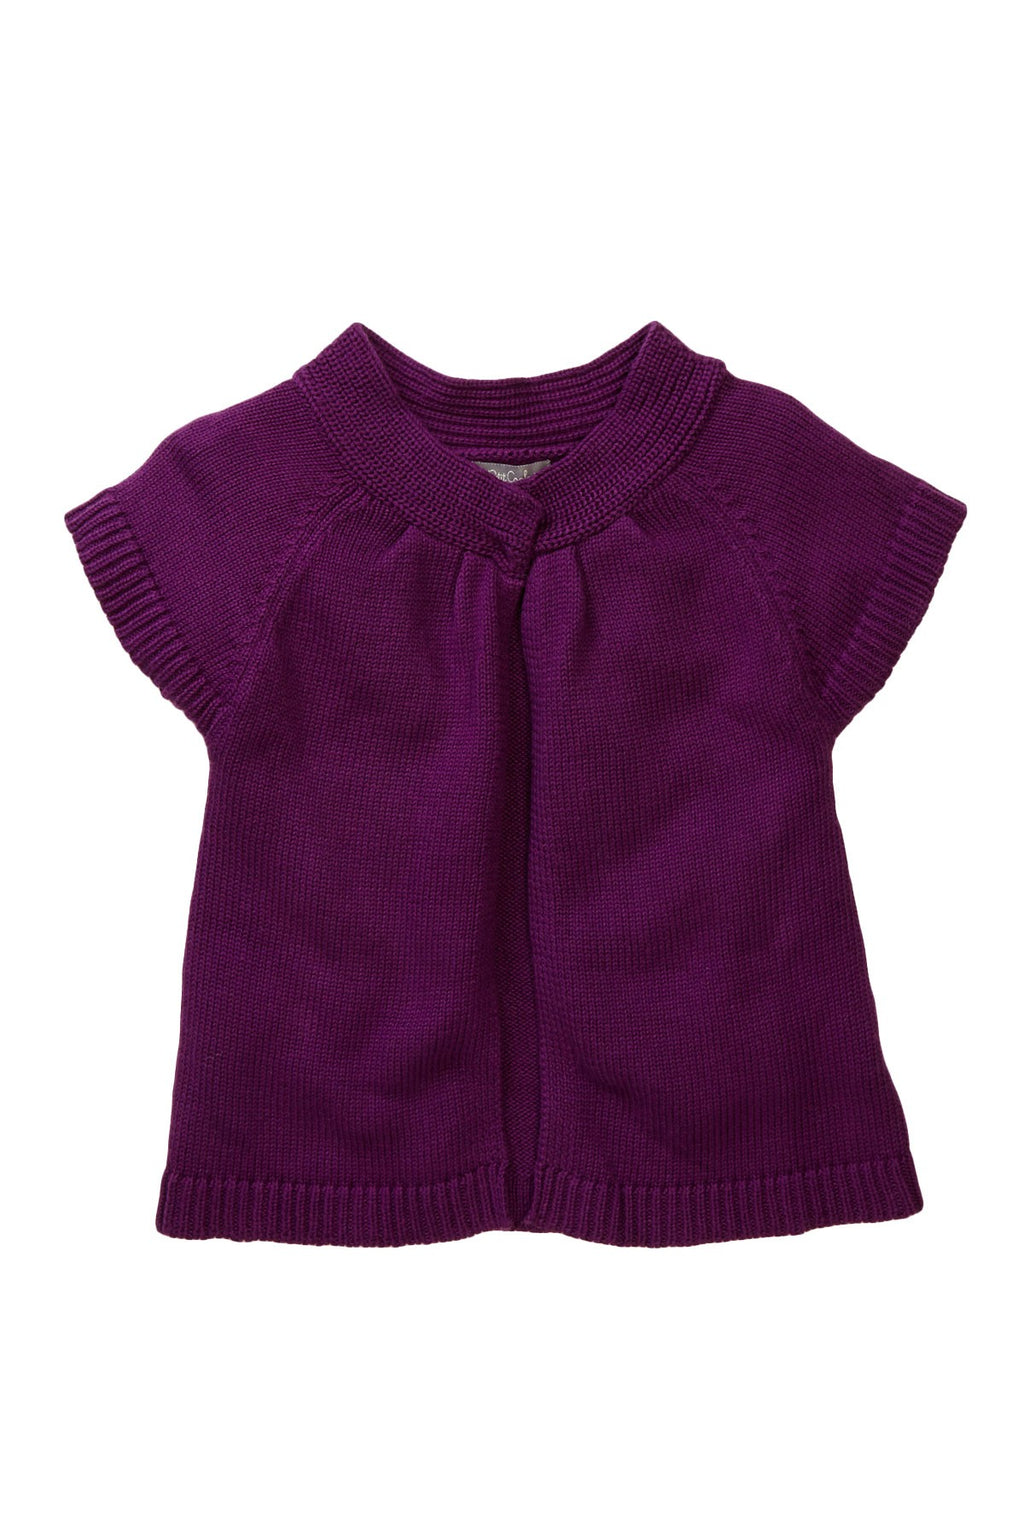 Purple Short-Sleeve Cardigan - Petit Confection